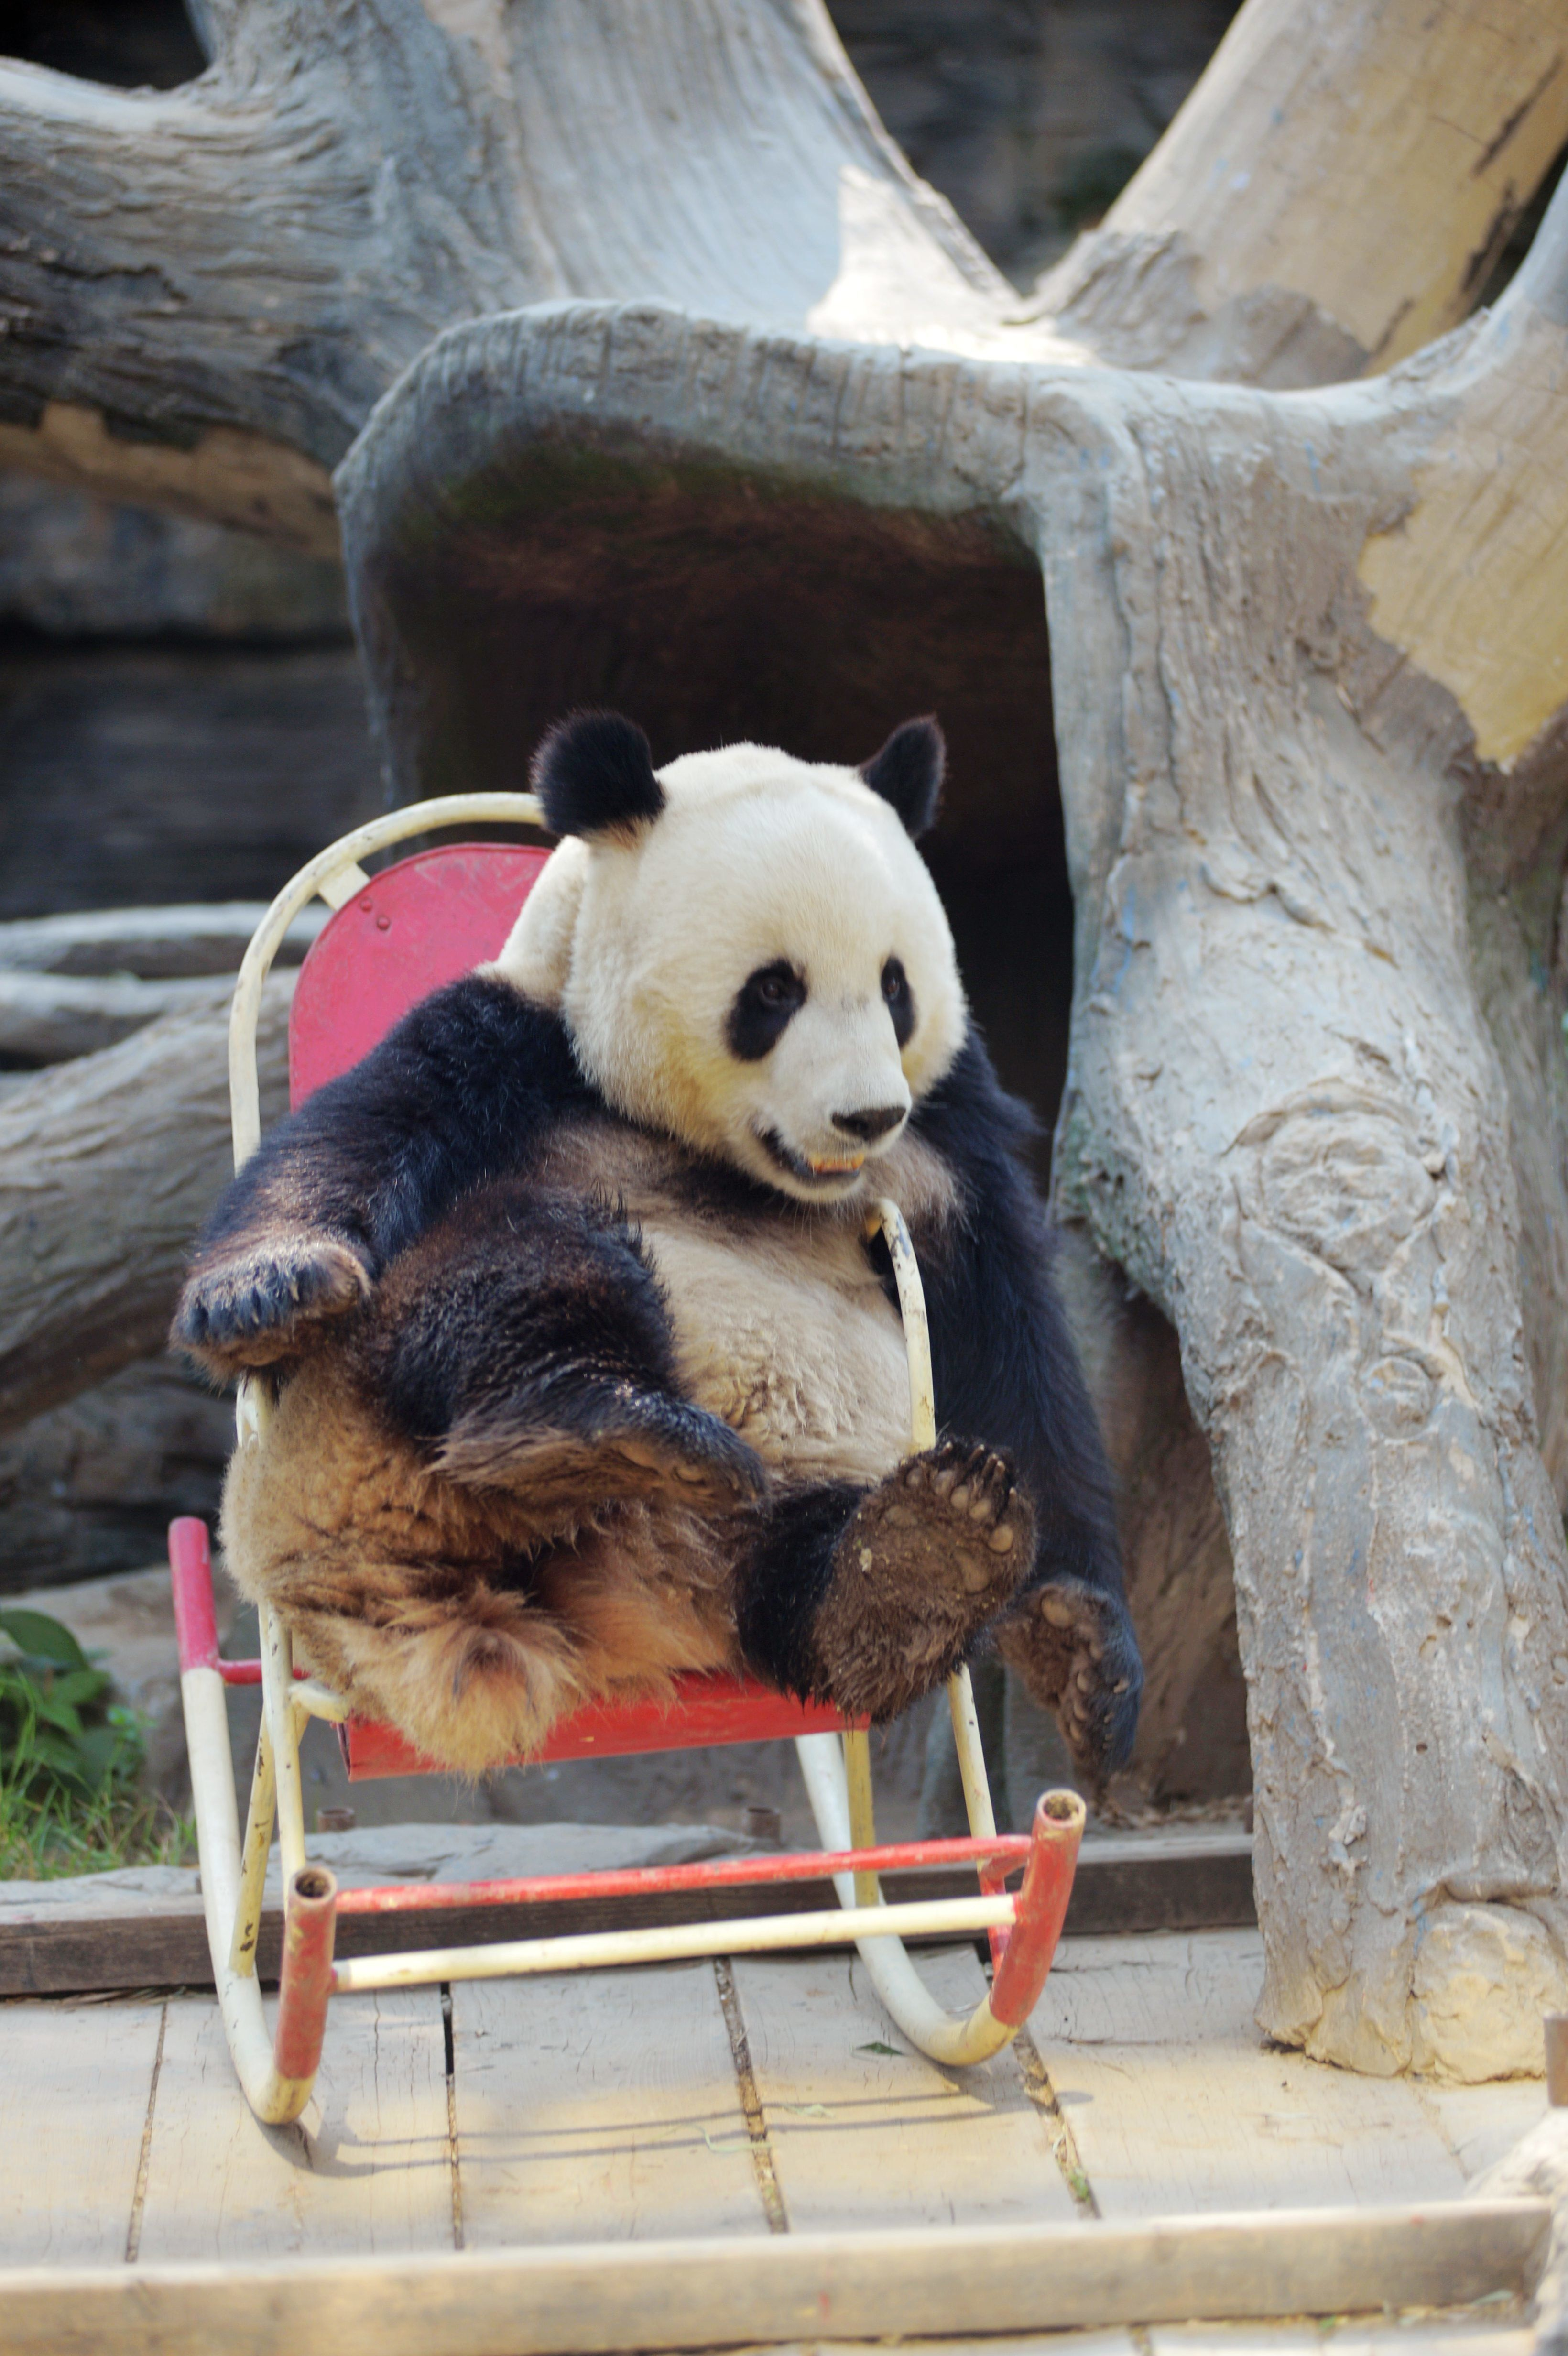 It's Been a Rough Week, But Just Enjoy This Panda In a Rocking